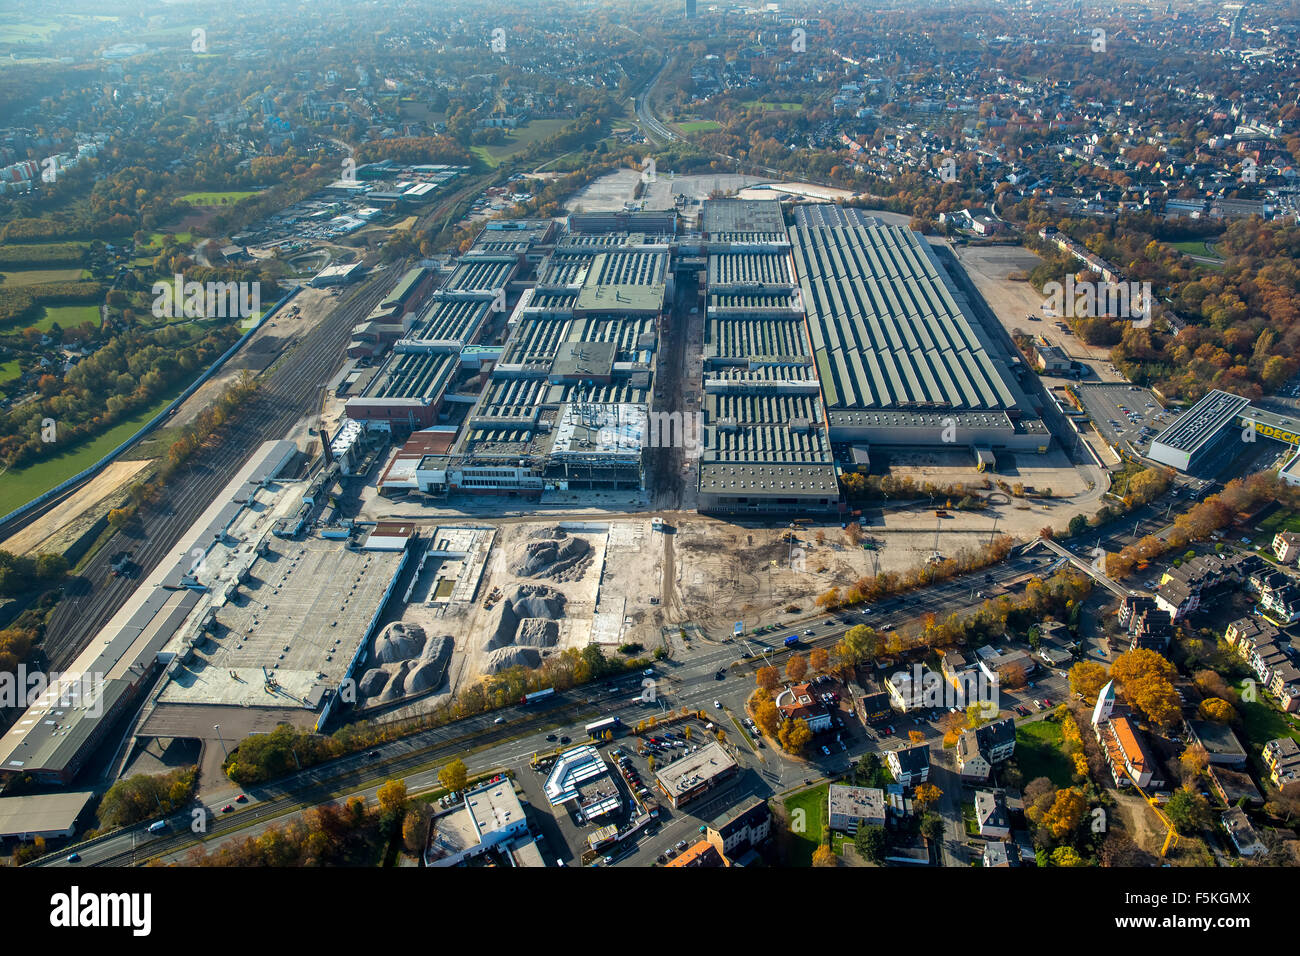 OPEL Opel plant 1, demolition demolition, automotive, expansion A44, Bochum, - Stock Image